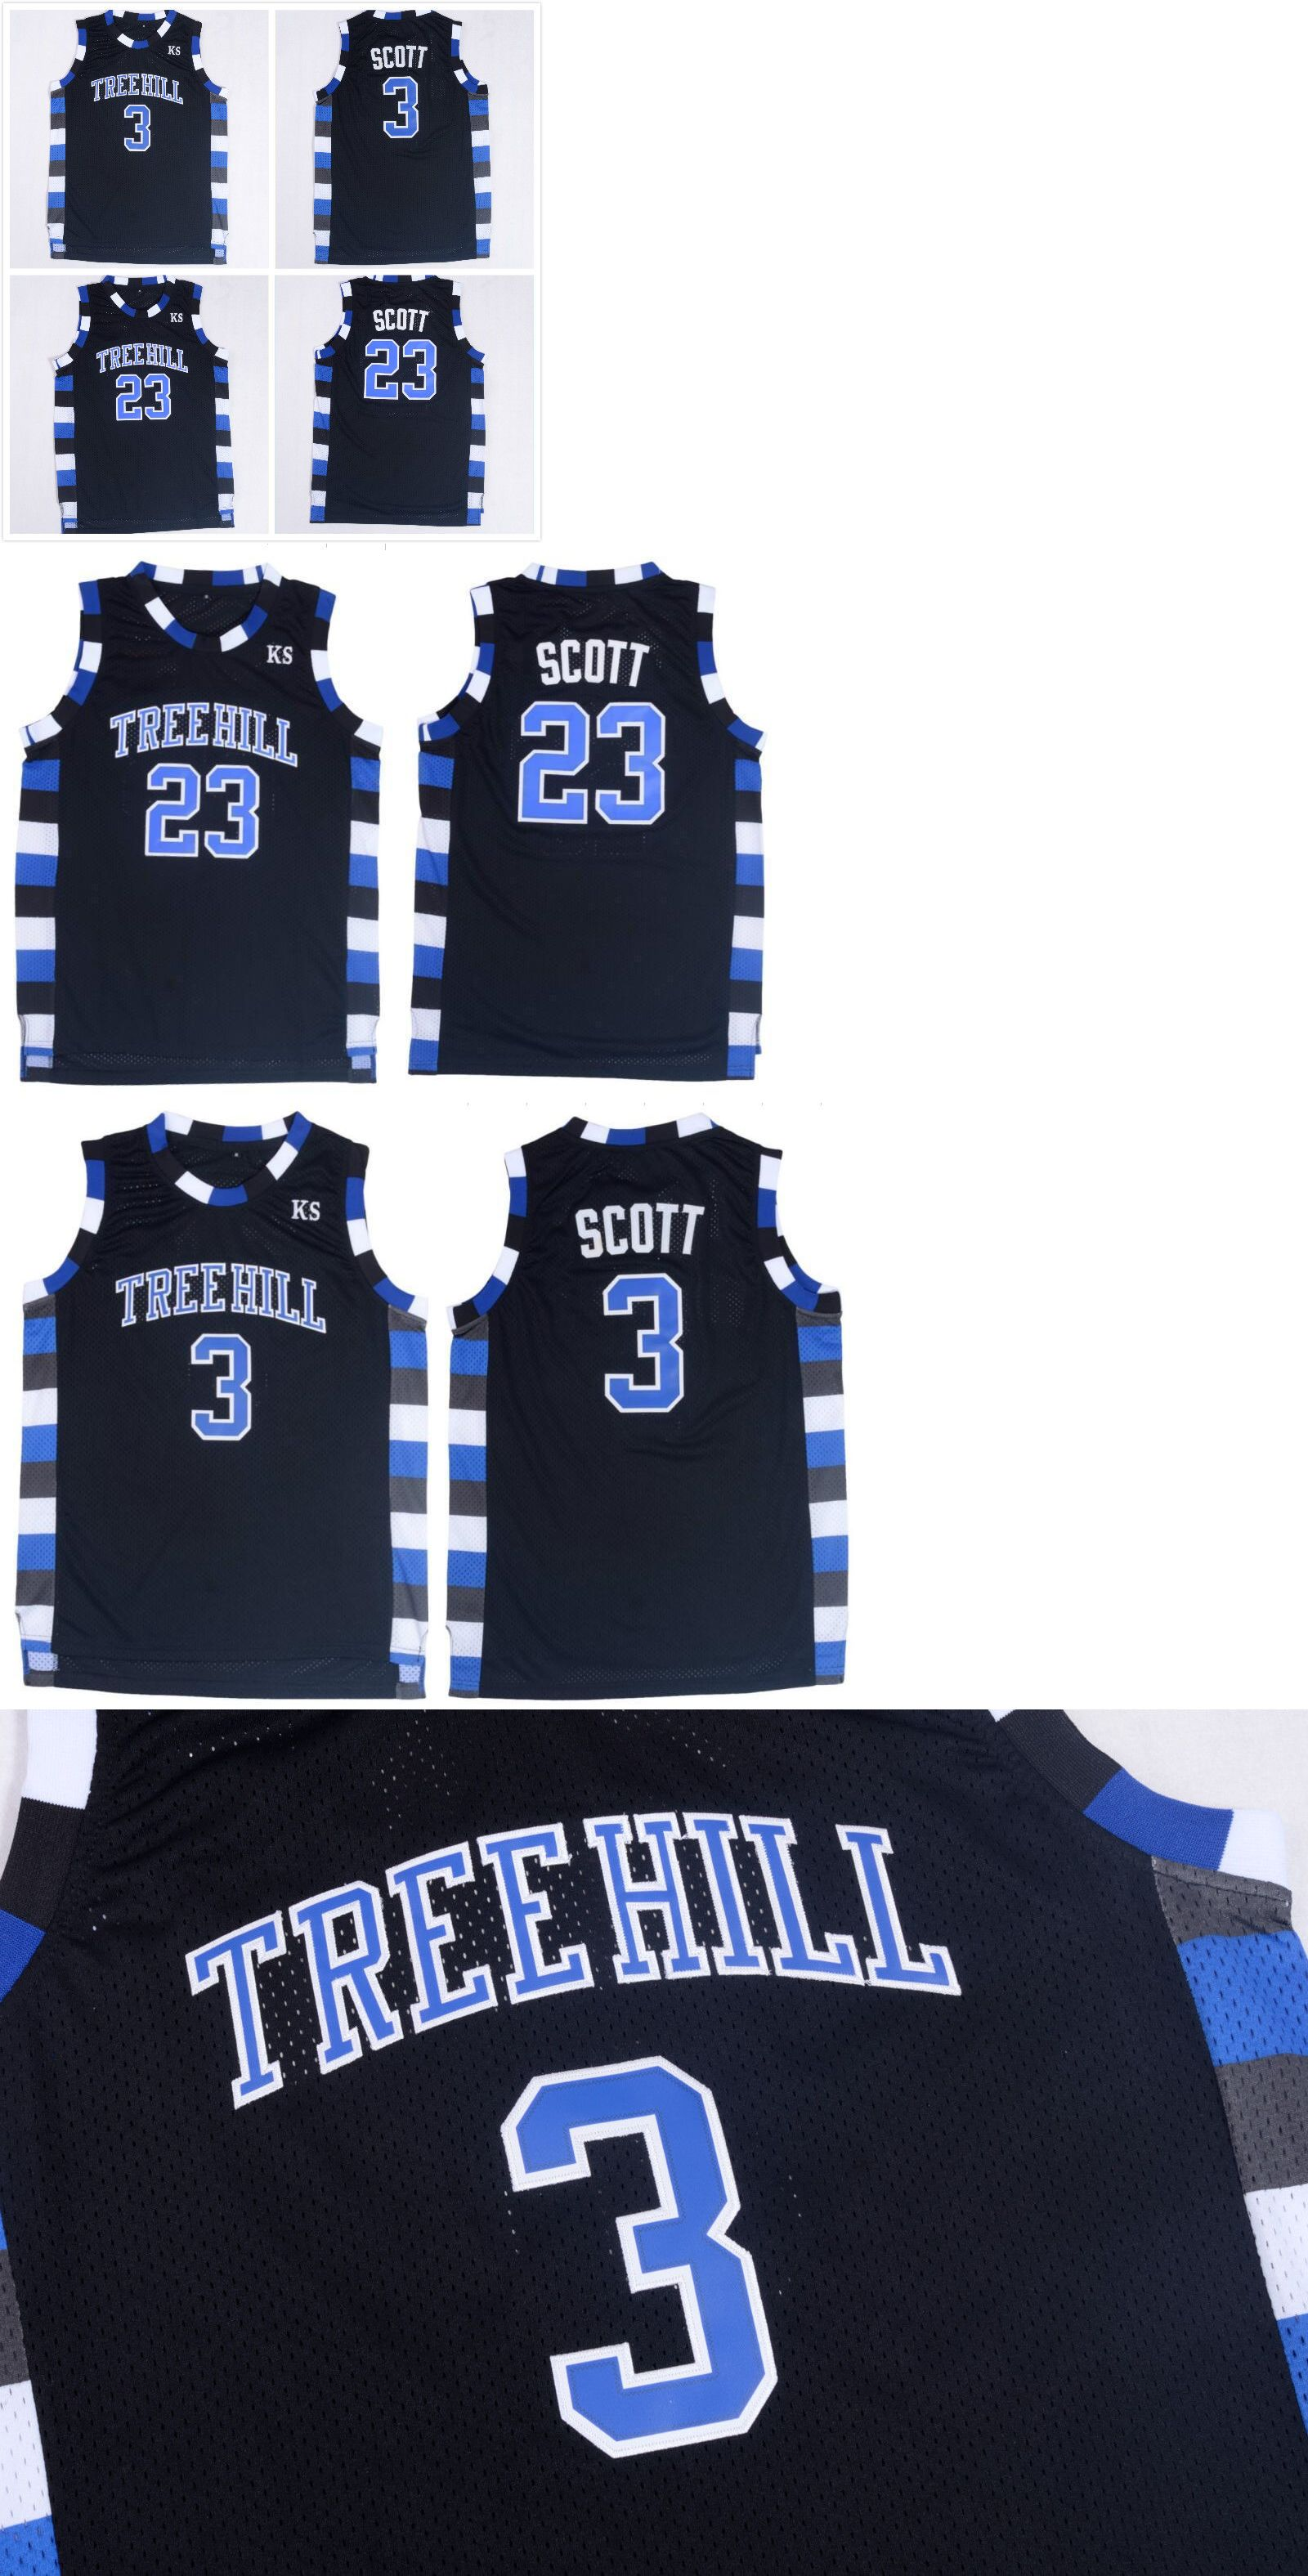 2844704f23e Clothing 158964: #23 Nathan Scoot #3 Lucas Scott One Tree Hill Black  Basketball Jersey -> BUY IT NOW ONLY: $19.99 on eBay!